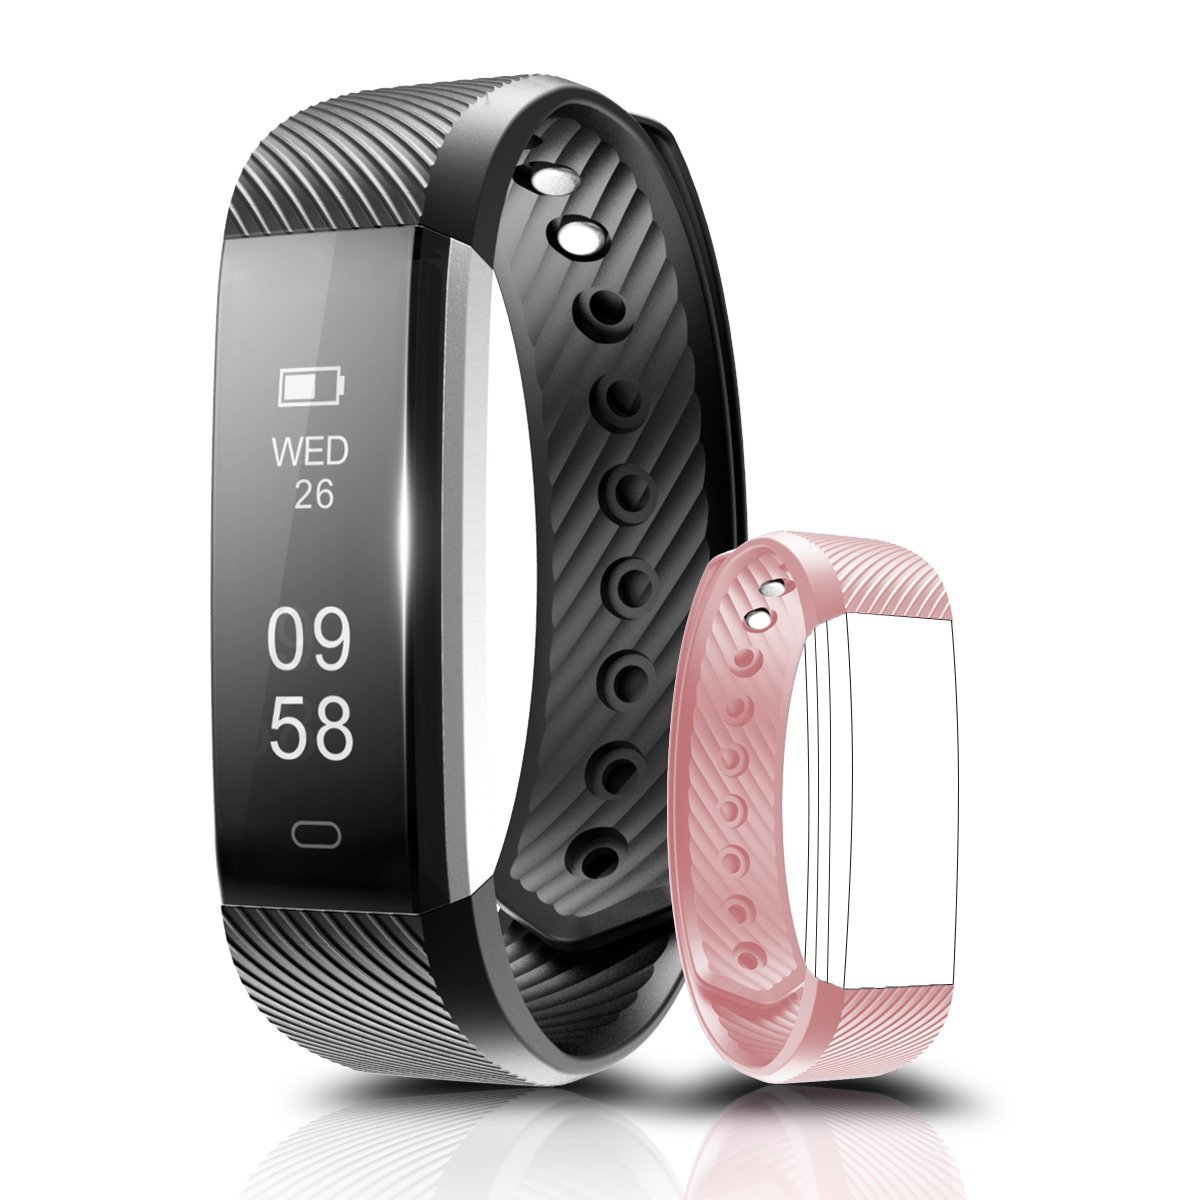 Fitness Tracker, Fitness Watch, Activity Wristband : Bluetooth Wireless Smart Bracelet, Waterproof Pedometer Activity Tracker Watch with Replacement Band for IOS & Android Smartphone